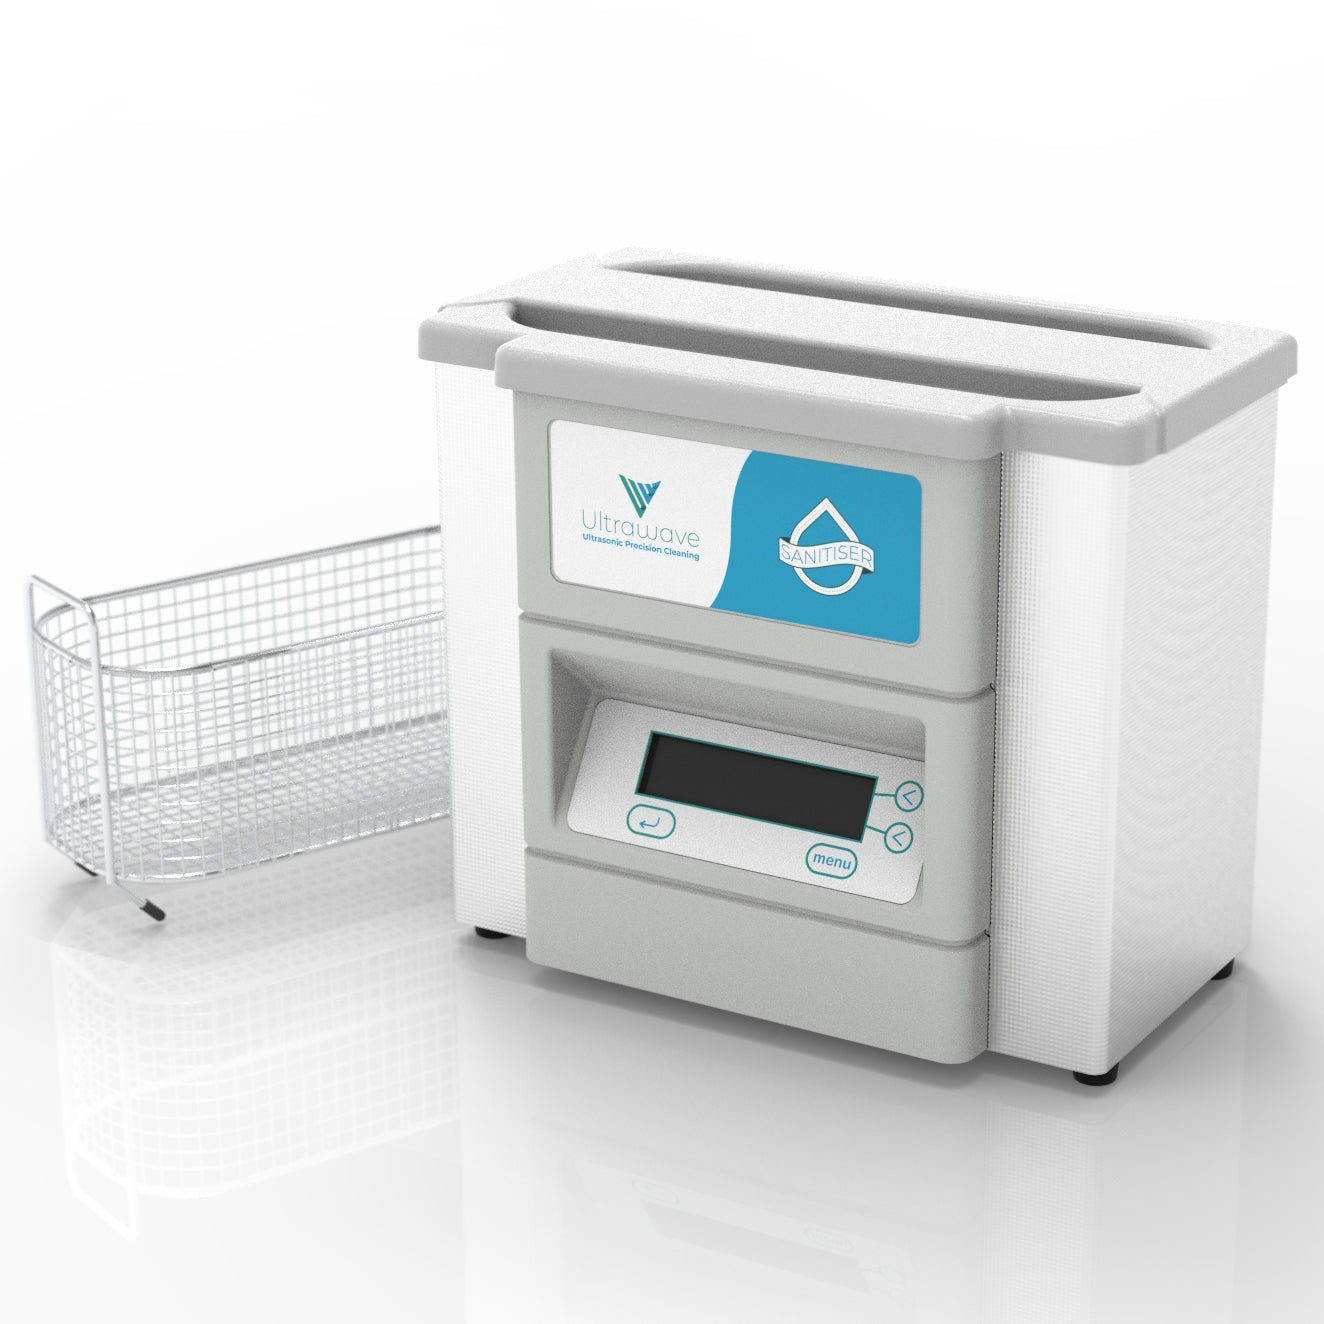 Sanitiser Ultrasonic Cleaning Bath 5L Product Image